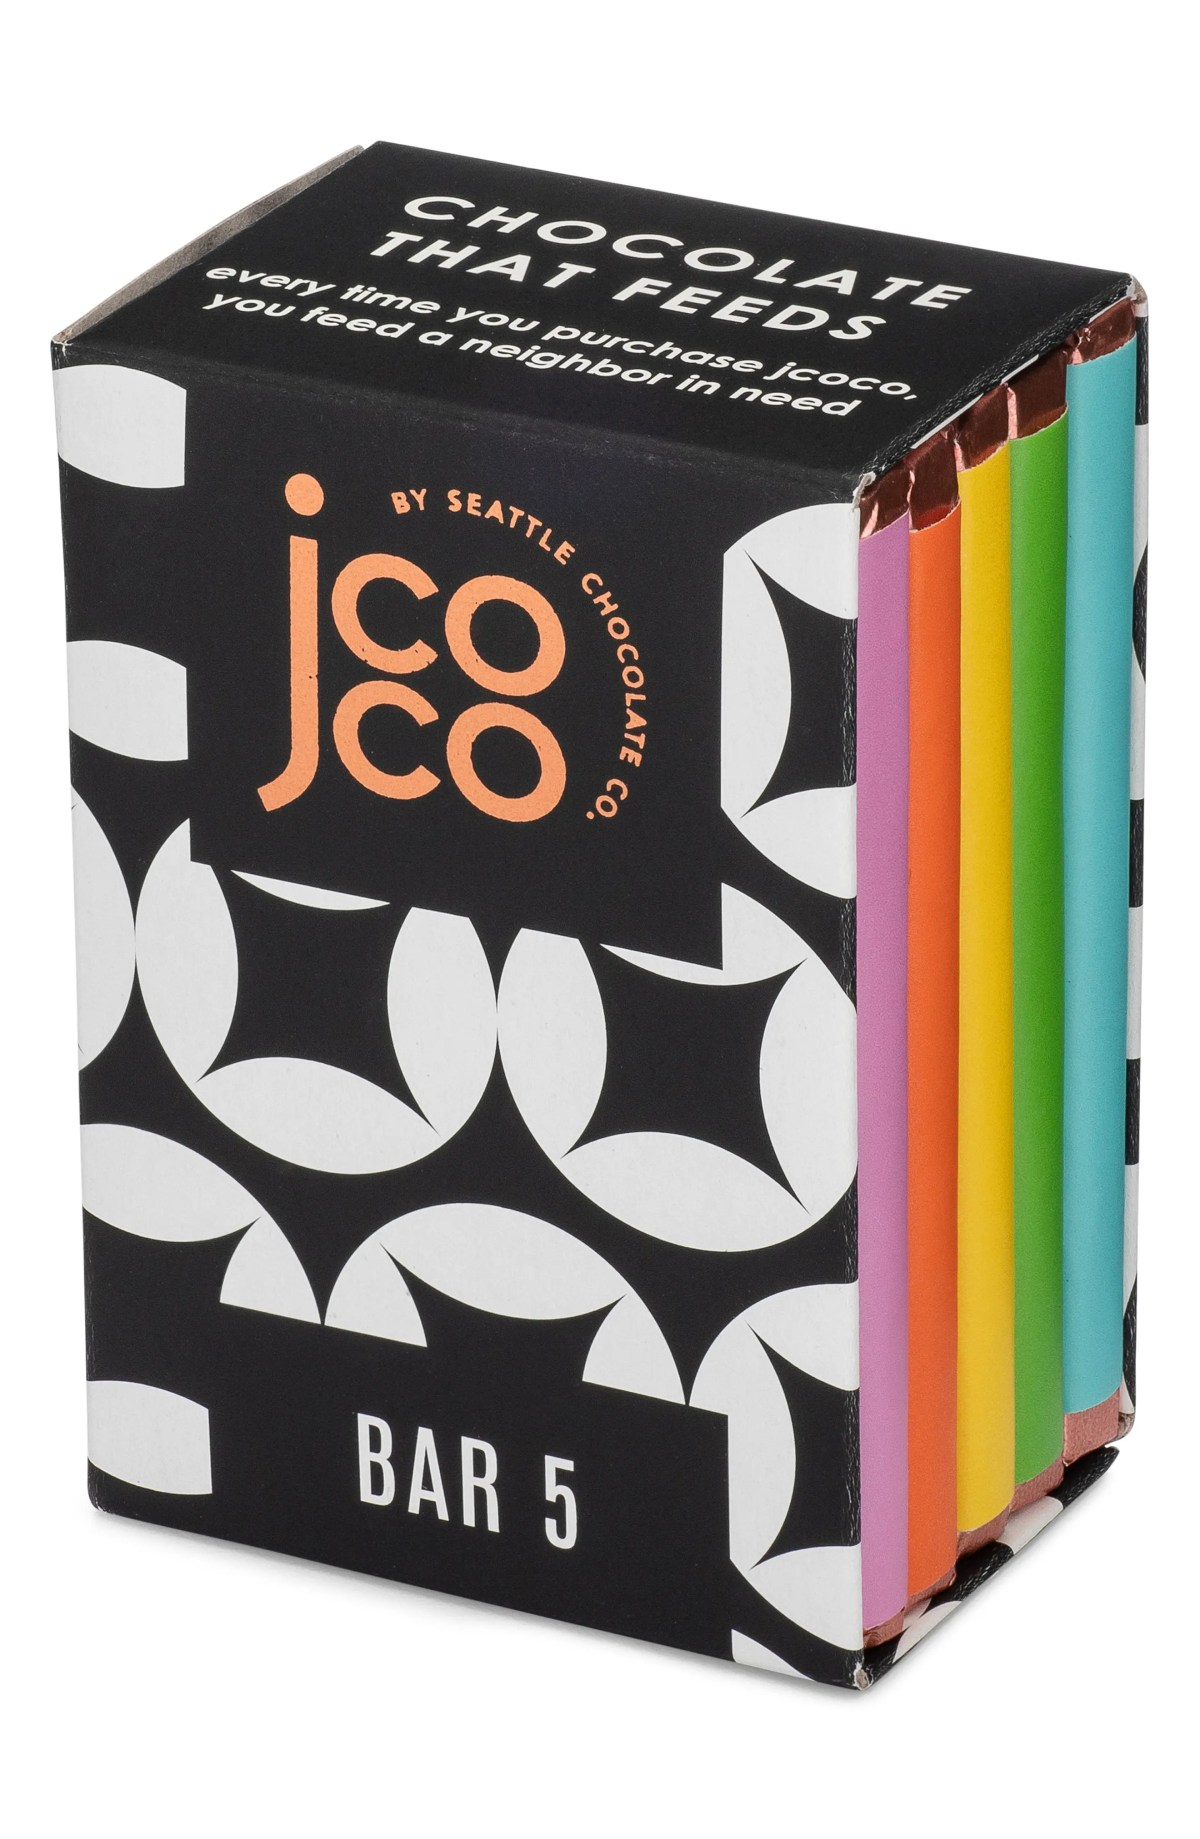 SEATTLE CHOCOLATE Bar 5 5-Piece Milk & White Chocolate Bars Gift Box, Main, color, BLACK AND WHITE